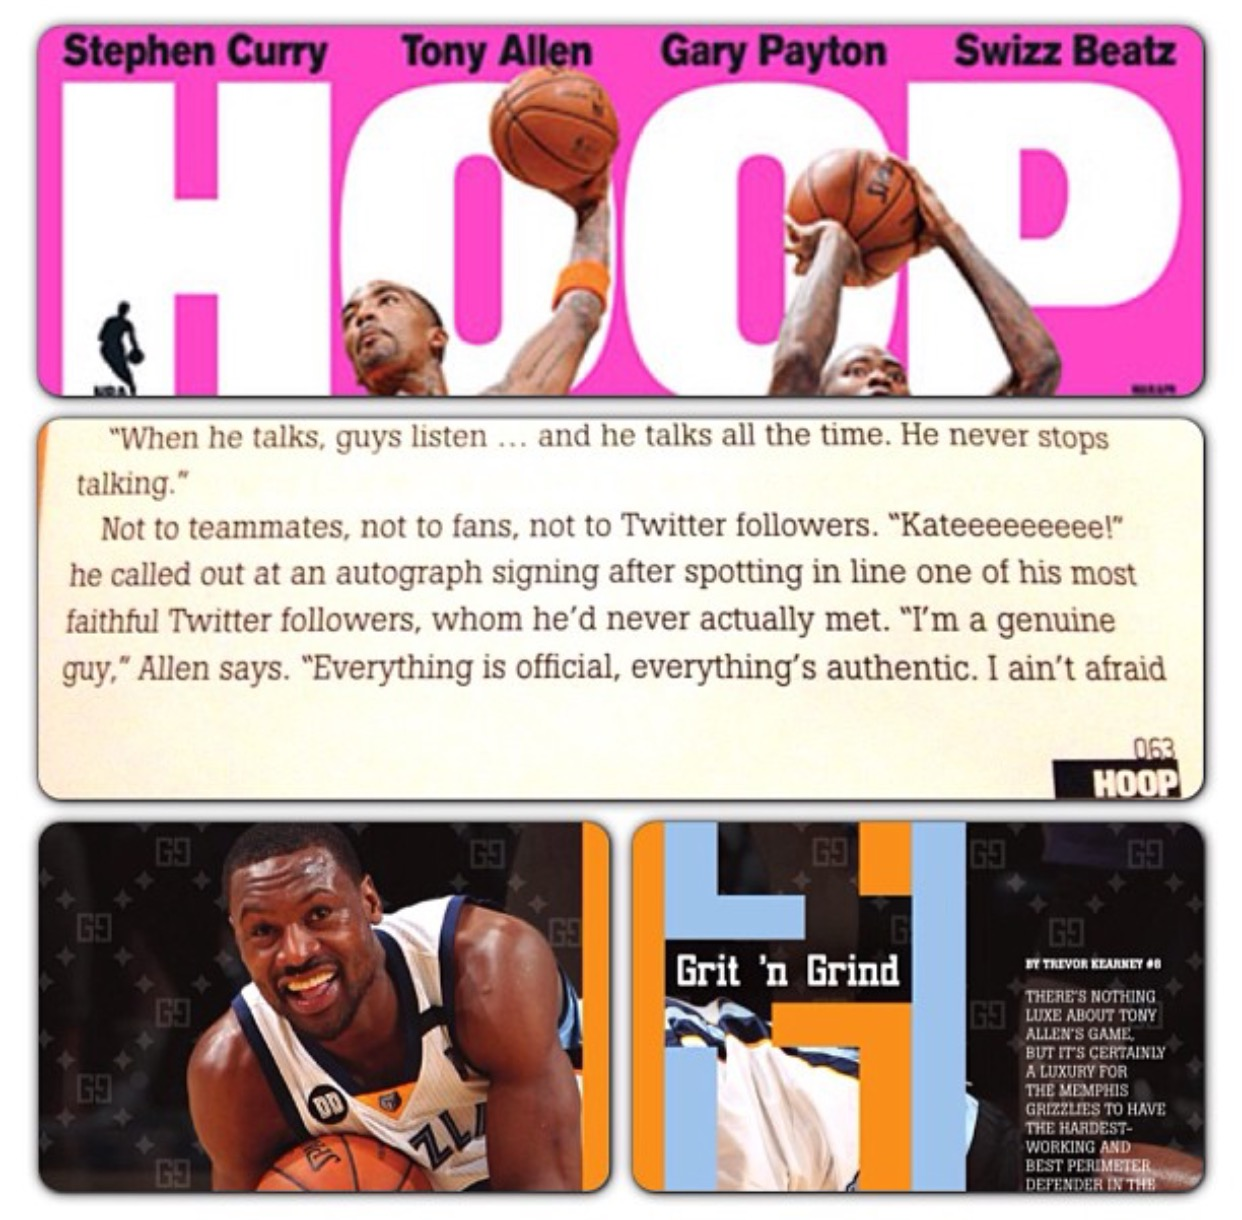 #TBT to that time that I was mentioned in Hoop Magazine. It still makes me smile. (It wasn't the first time we met, but I didn't tell Tony who I was the first time we met. I was too nervous!)